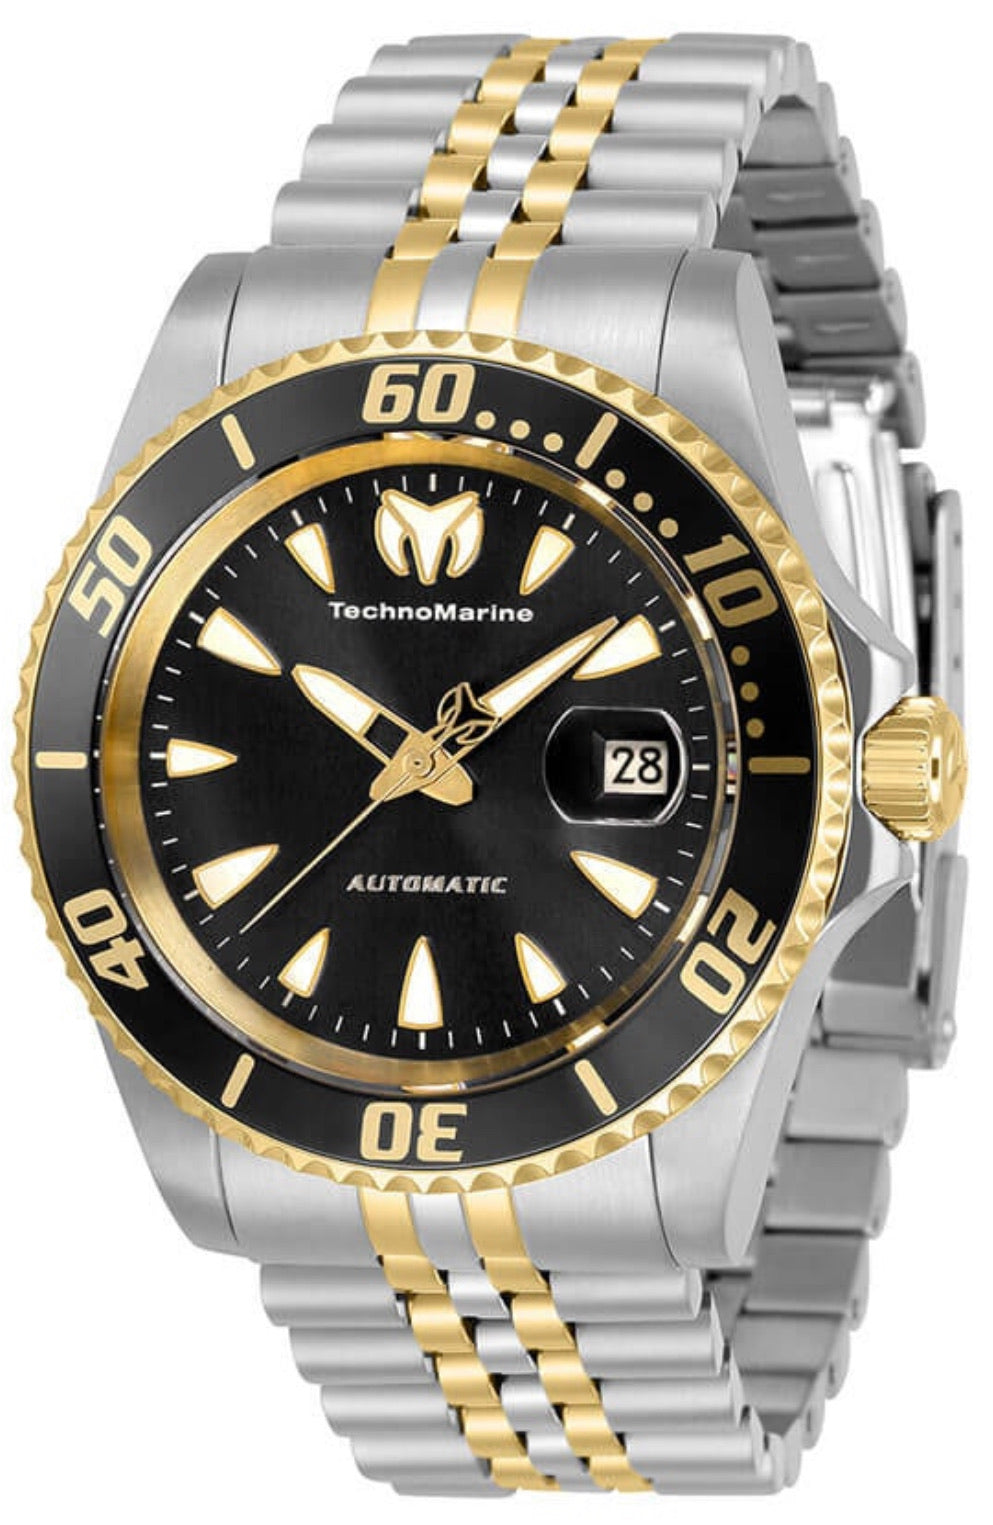 TECHNOMARINE MANTA MENS AUTOMATIC 42MM - MODEL TM-219048 - Boutique Watches & More